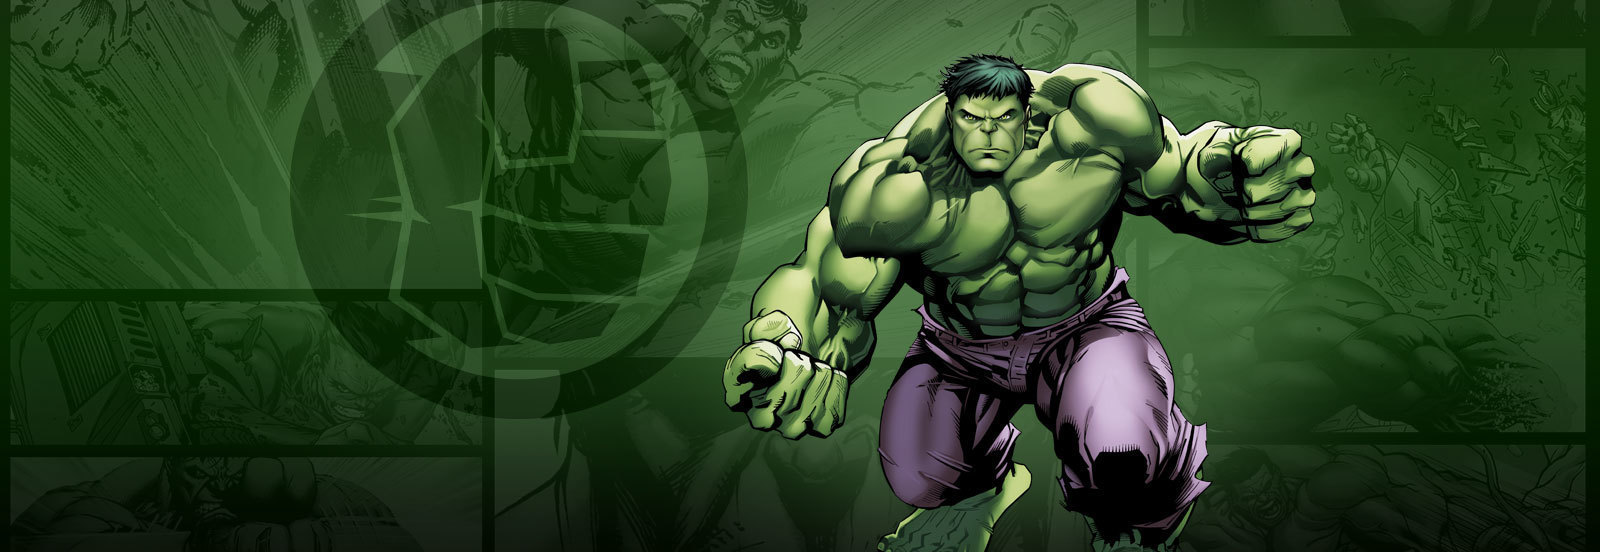 Wallpaper Superhero Marvel 3d Hulk Marvel Avenger Superhero Desktop Background Hd Wallpaper